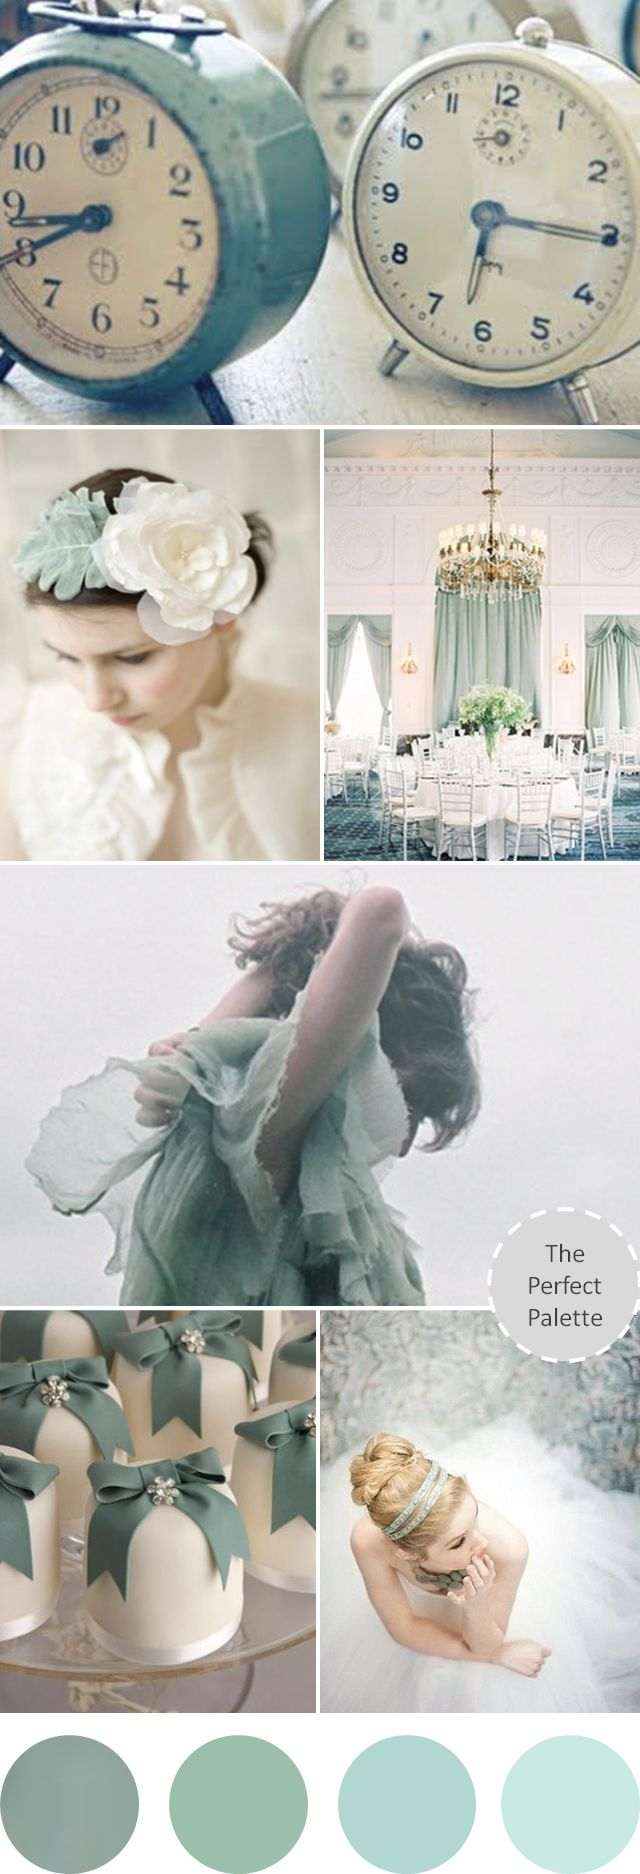 Wedding Colors | Grayed Jade http://www.theperfectpalette.com/2013/06/wedding-colors-i-love-shades-of-grayed.html